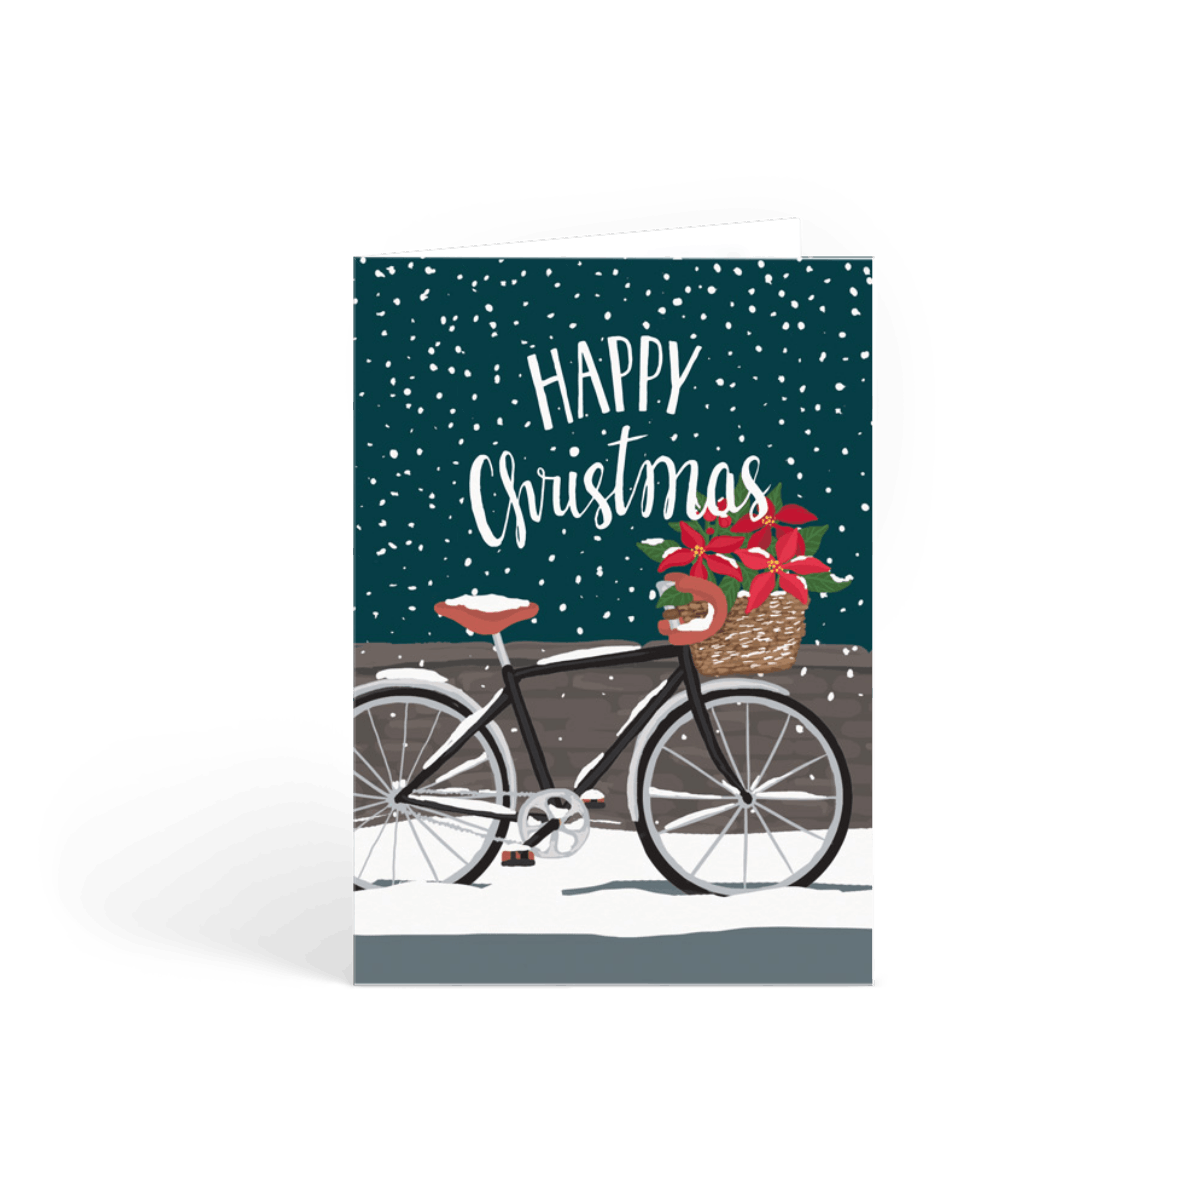 Https%3a%2f%2fwww.papier.com%2fproduct image%2f3525%2f2%2fchristmas bicycle 942 front 1570704653.png?ixlib=rb 1.1